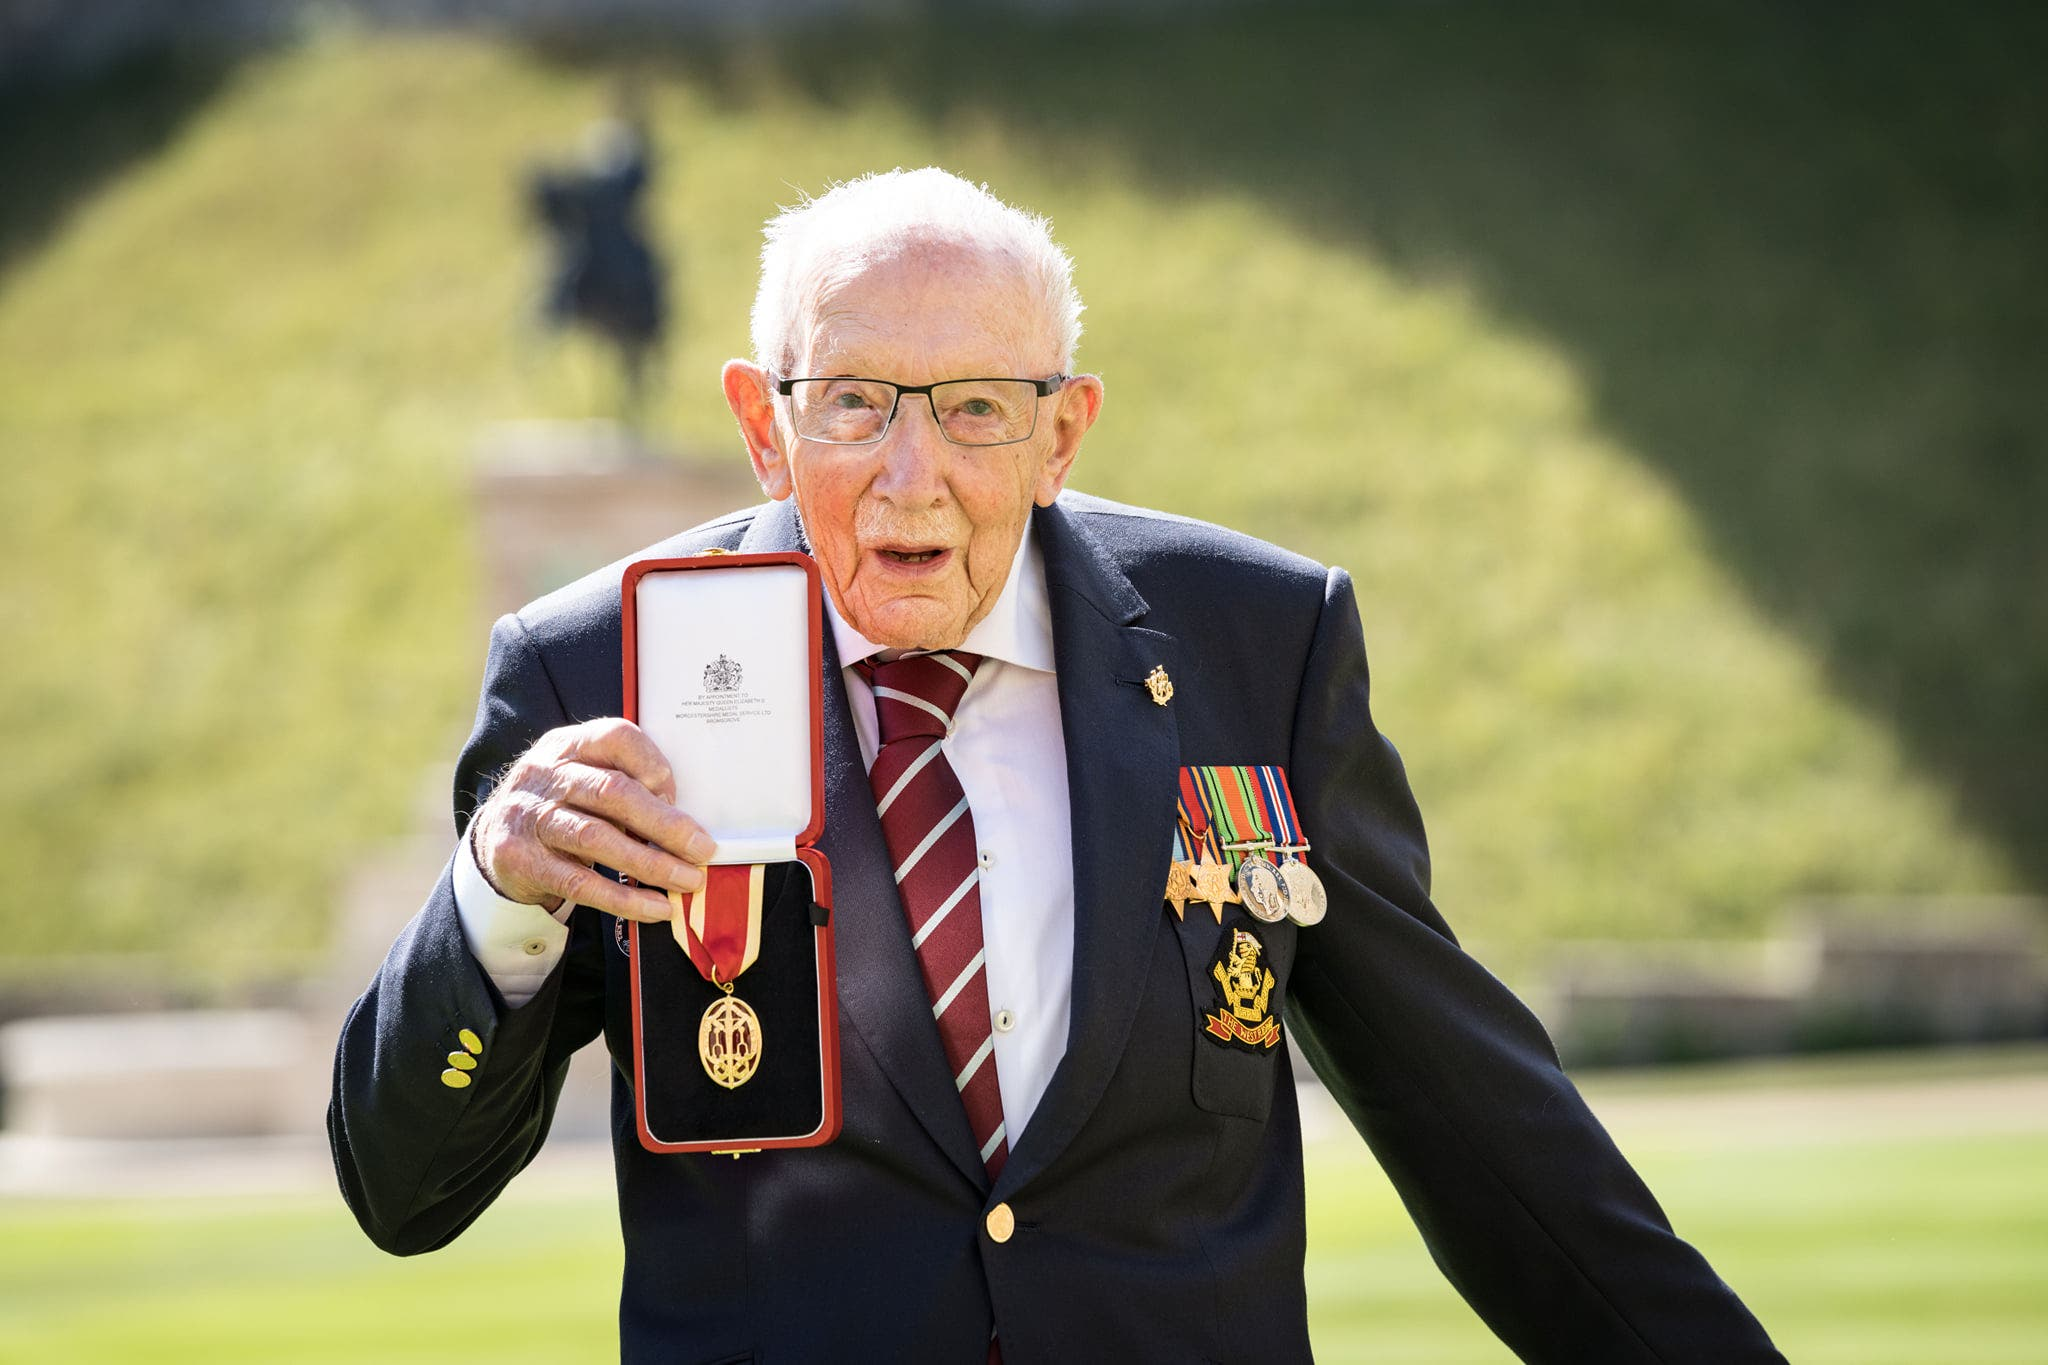 Knighthood for Captain Tom Moore